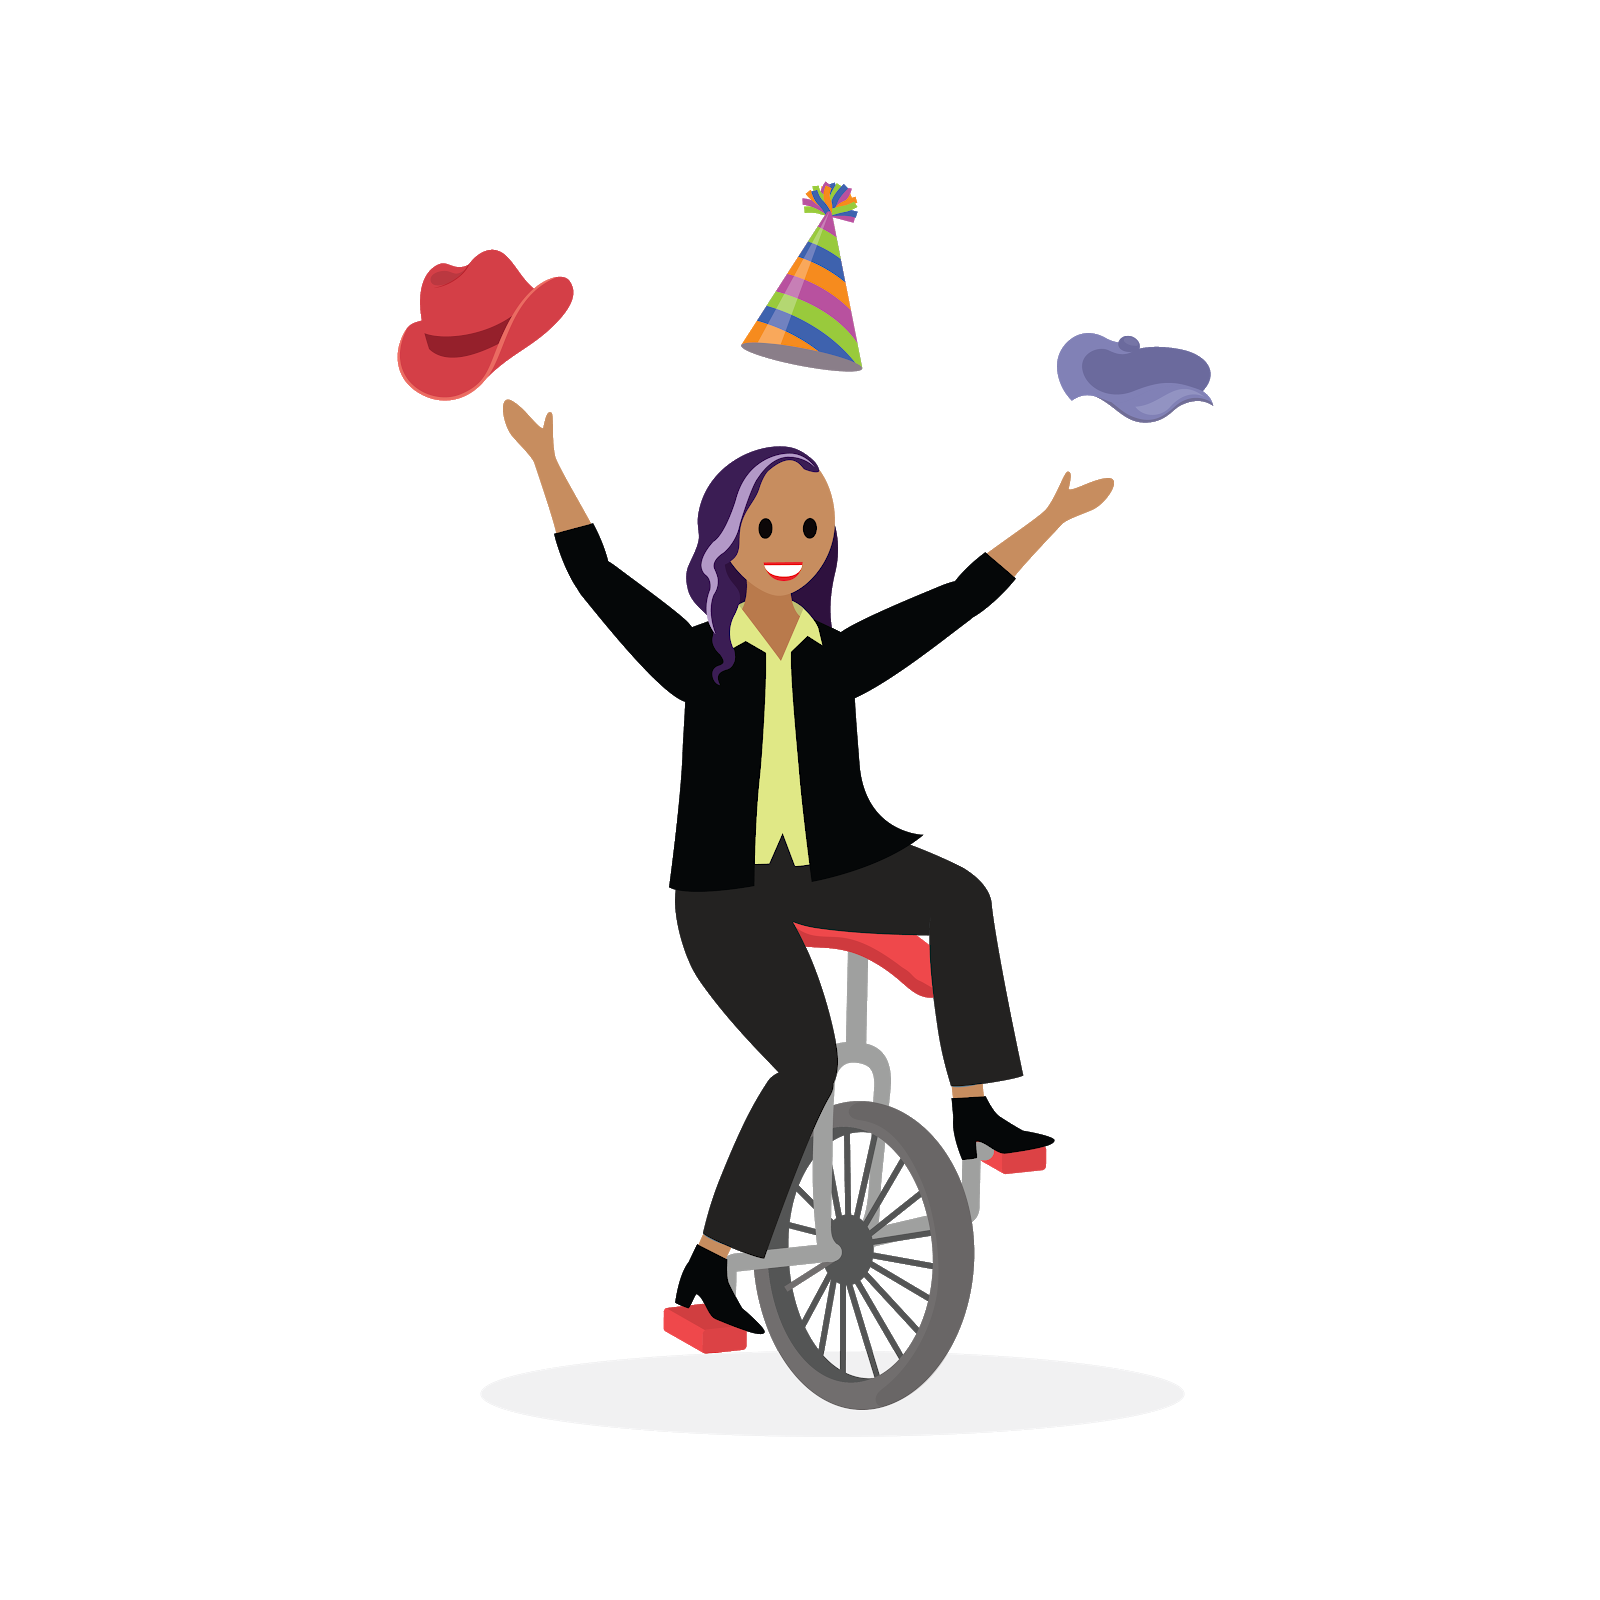 A mentee juggling three different hats while riding a unicycle.